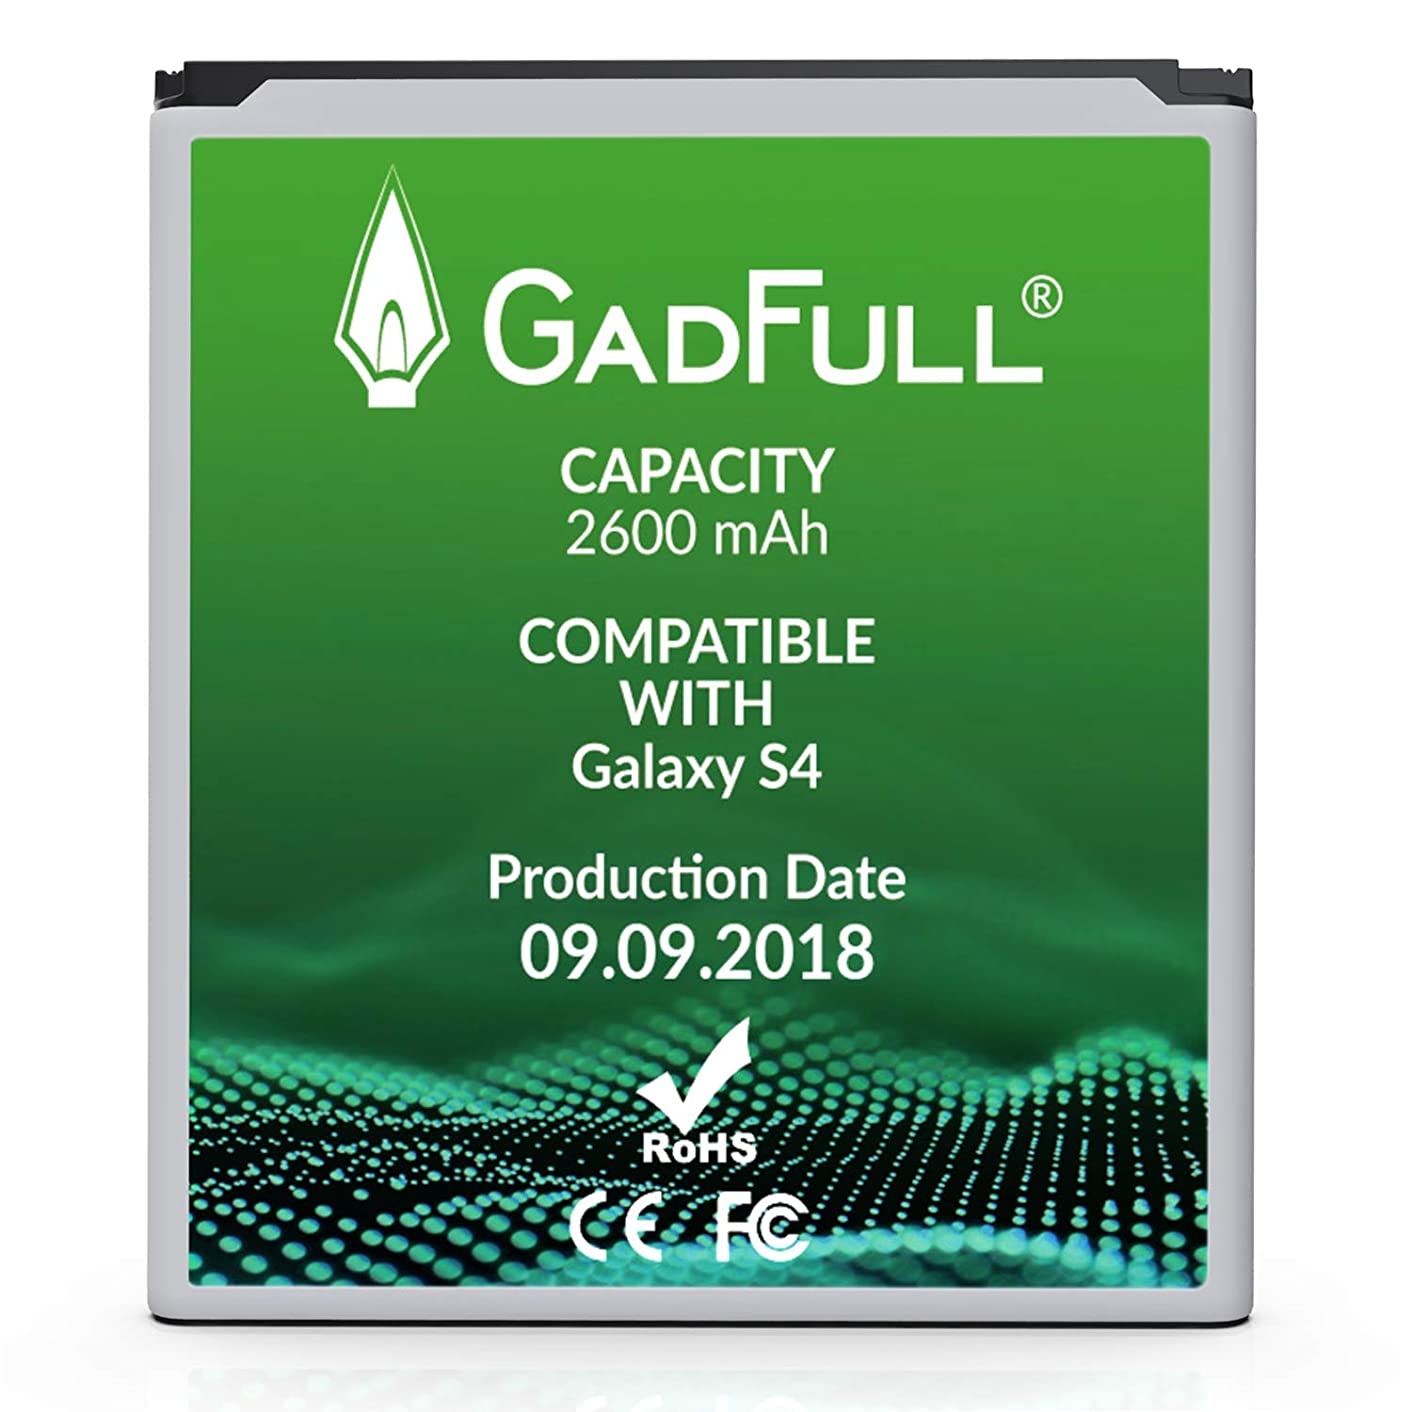 GadFull Battery Compatible with Samsung Galaxy S4 | 2018 Production Date | Corresponds to The Original EB-B600BE | Compatible with Galaxy S4 i9500 & LTE i9505 xjsylkjd40936708